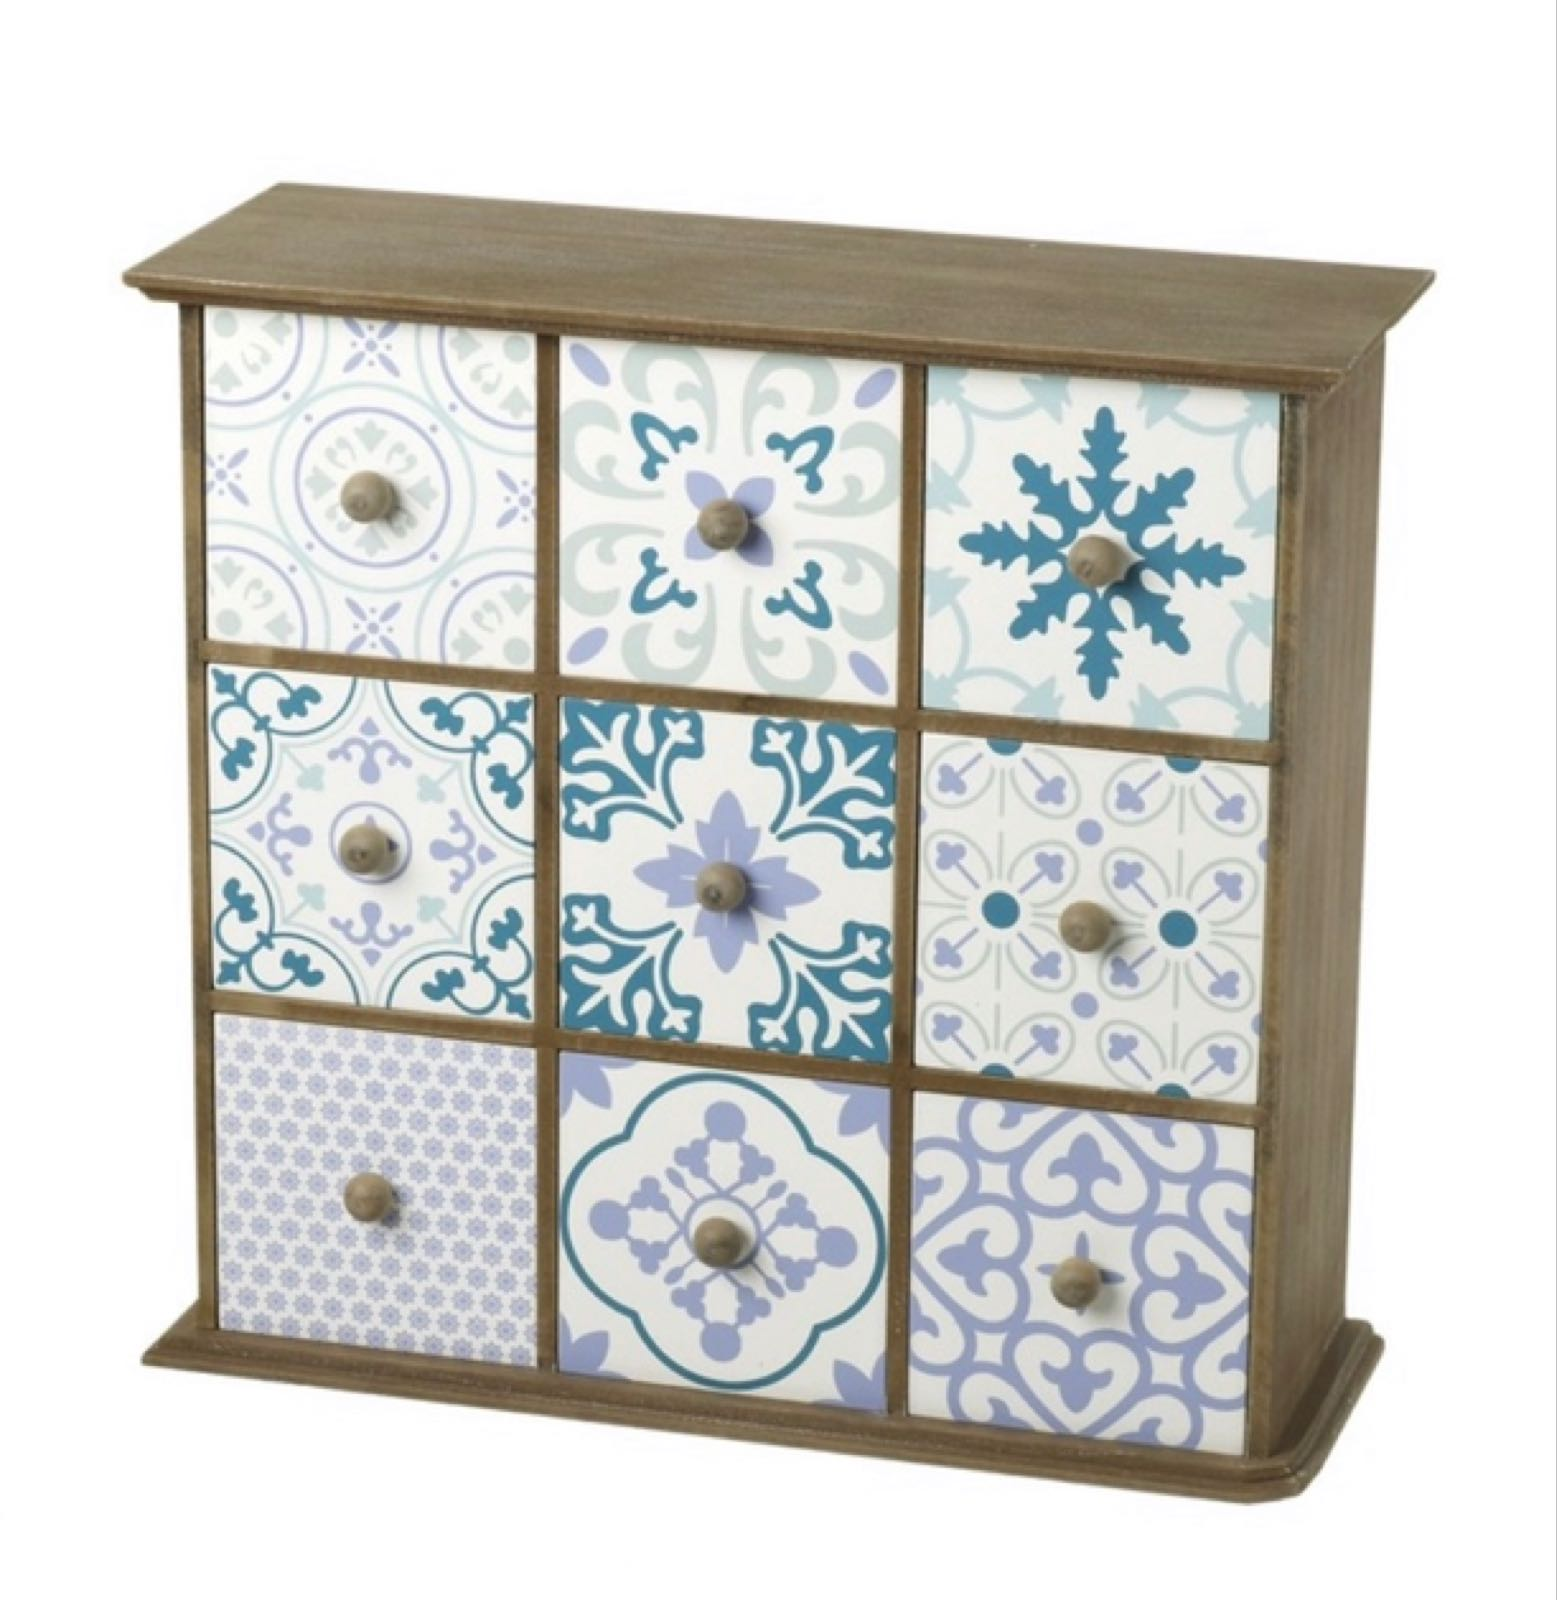 Patterned wooden 9 drawers